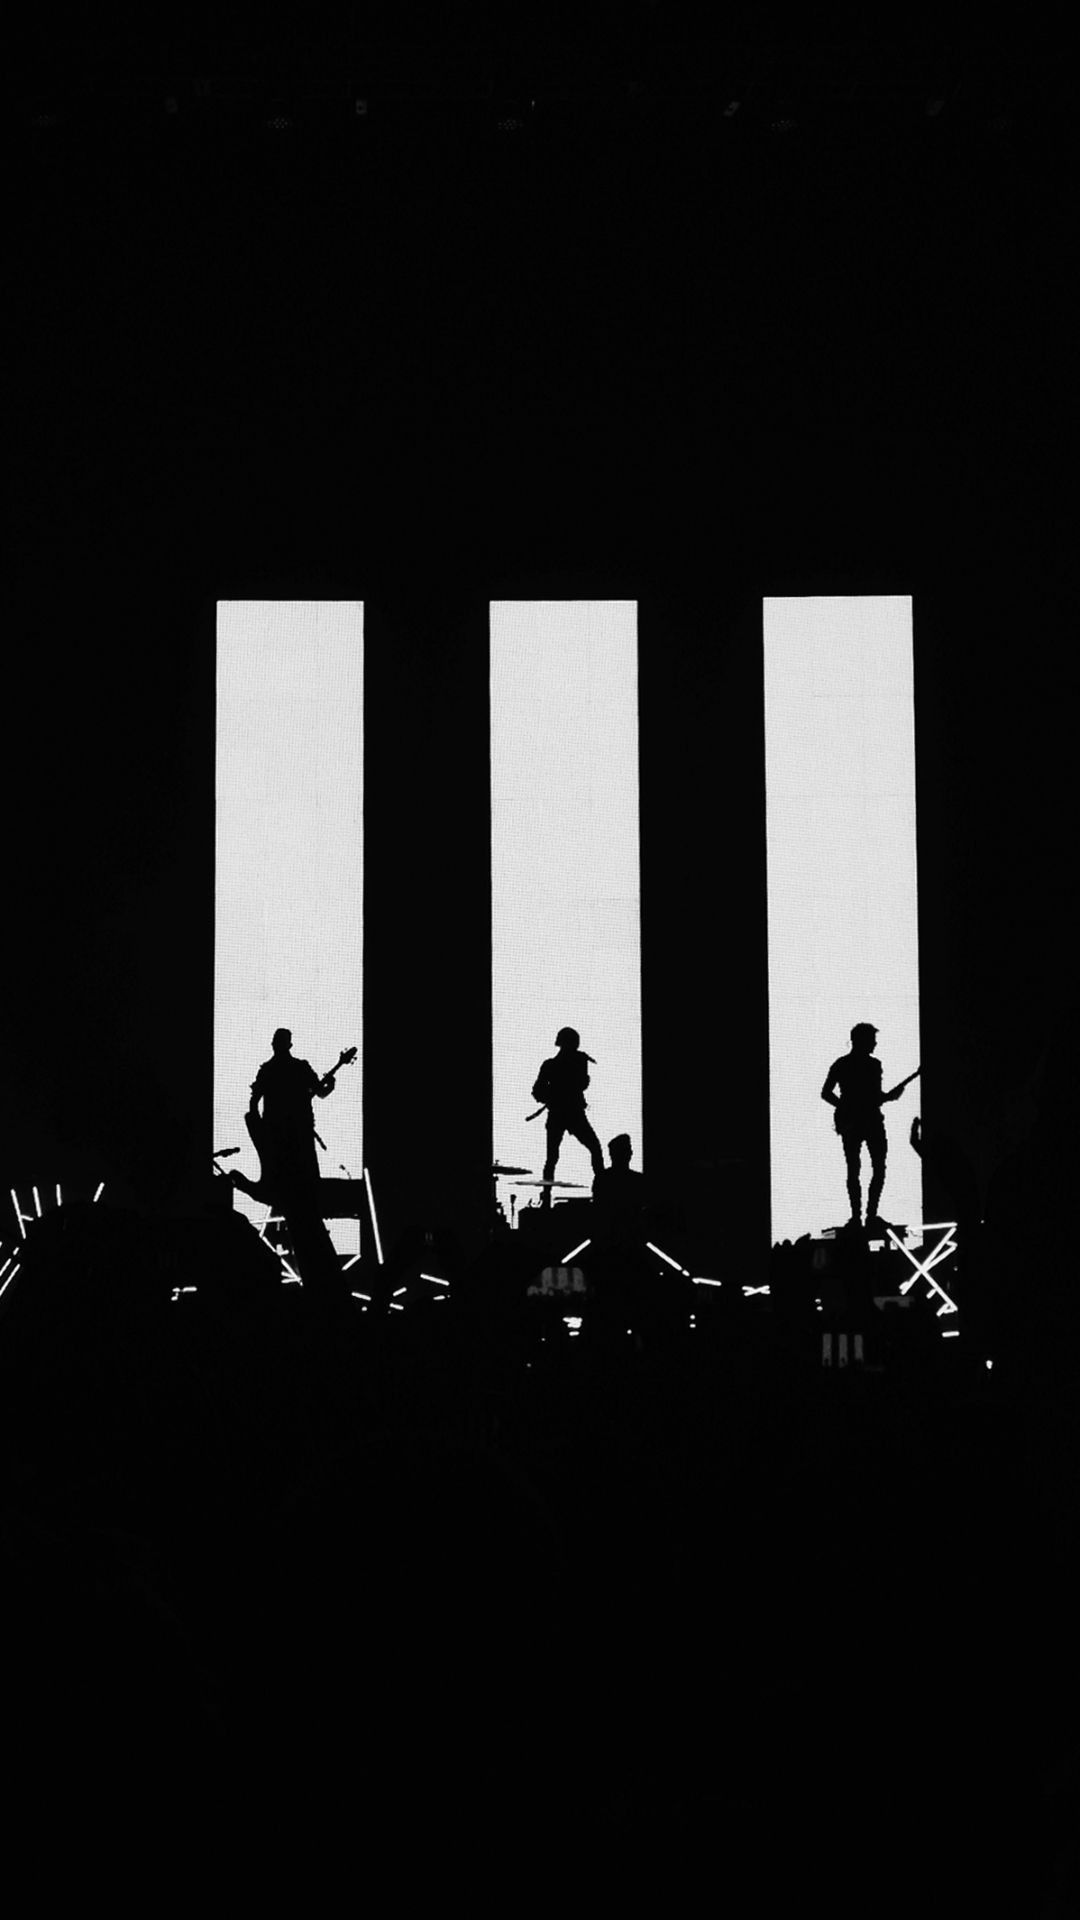 1080x1920 Download This Wallpaper Iphone 5 Music Paramore 1080x1920 For All Your Phones Paramore Wallpaper Iphone Wallpaper Music 5sos Wallpaper